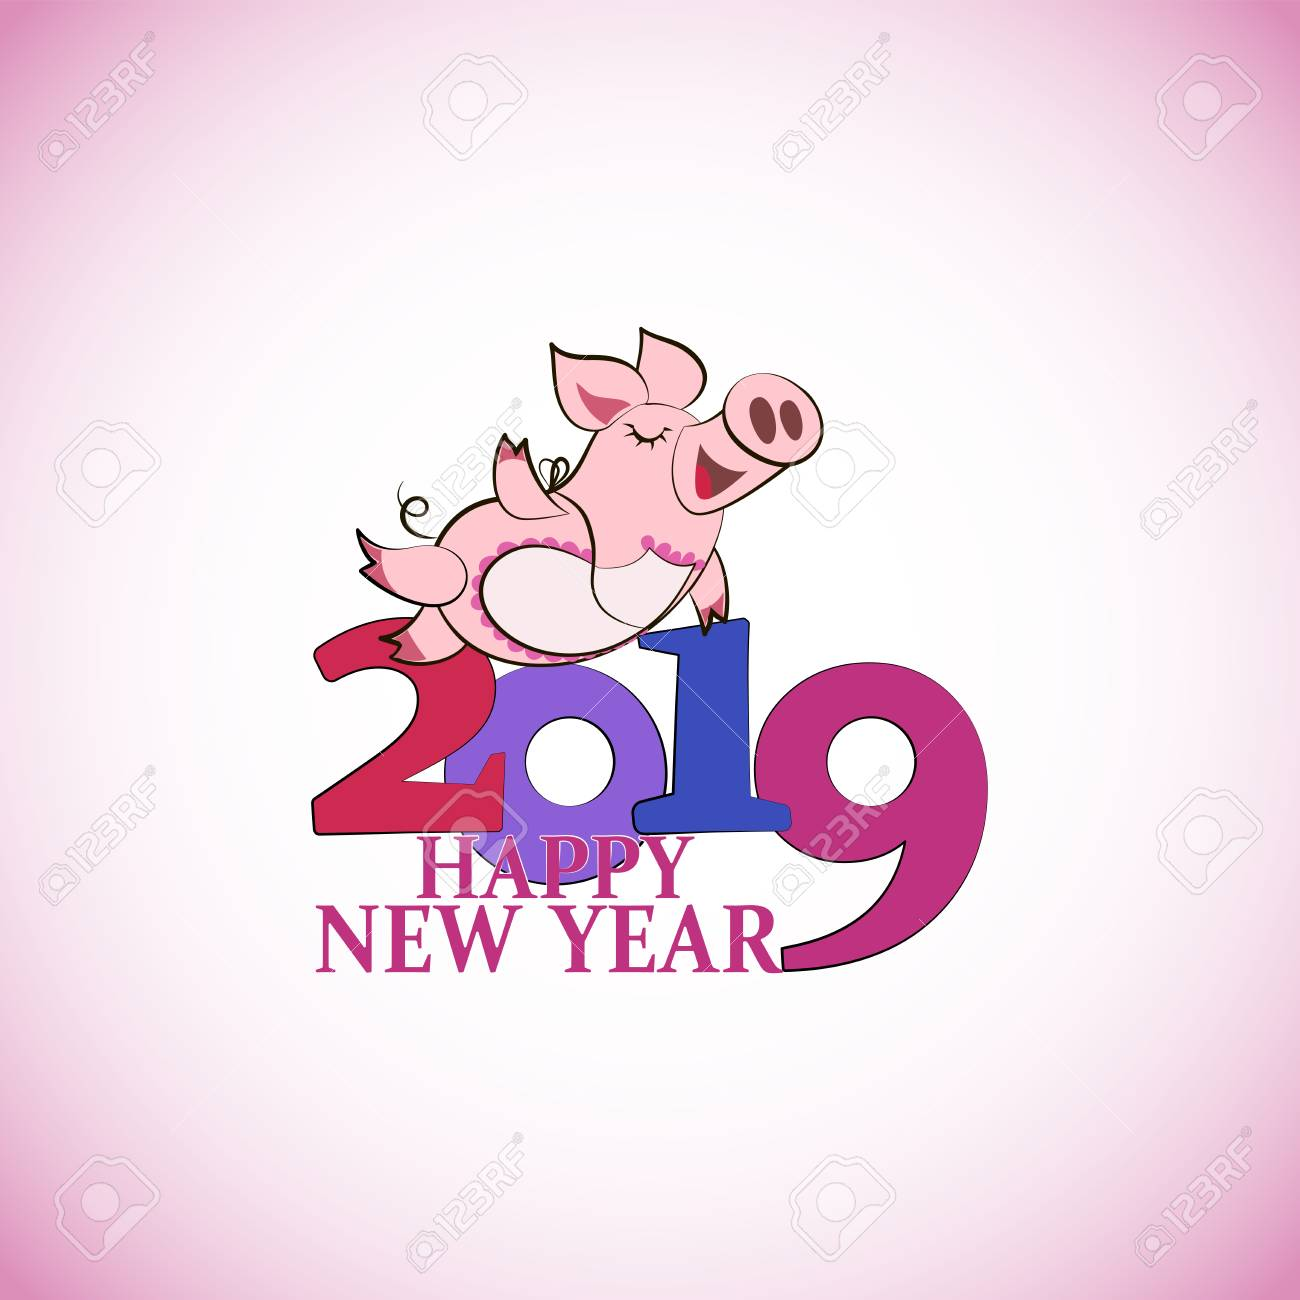 happy new year chinese symbol of the 2019 year greeting